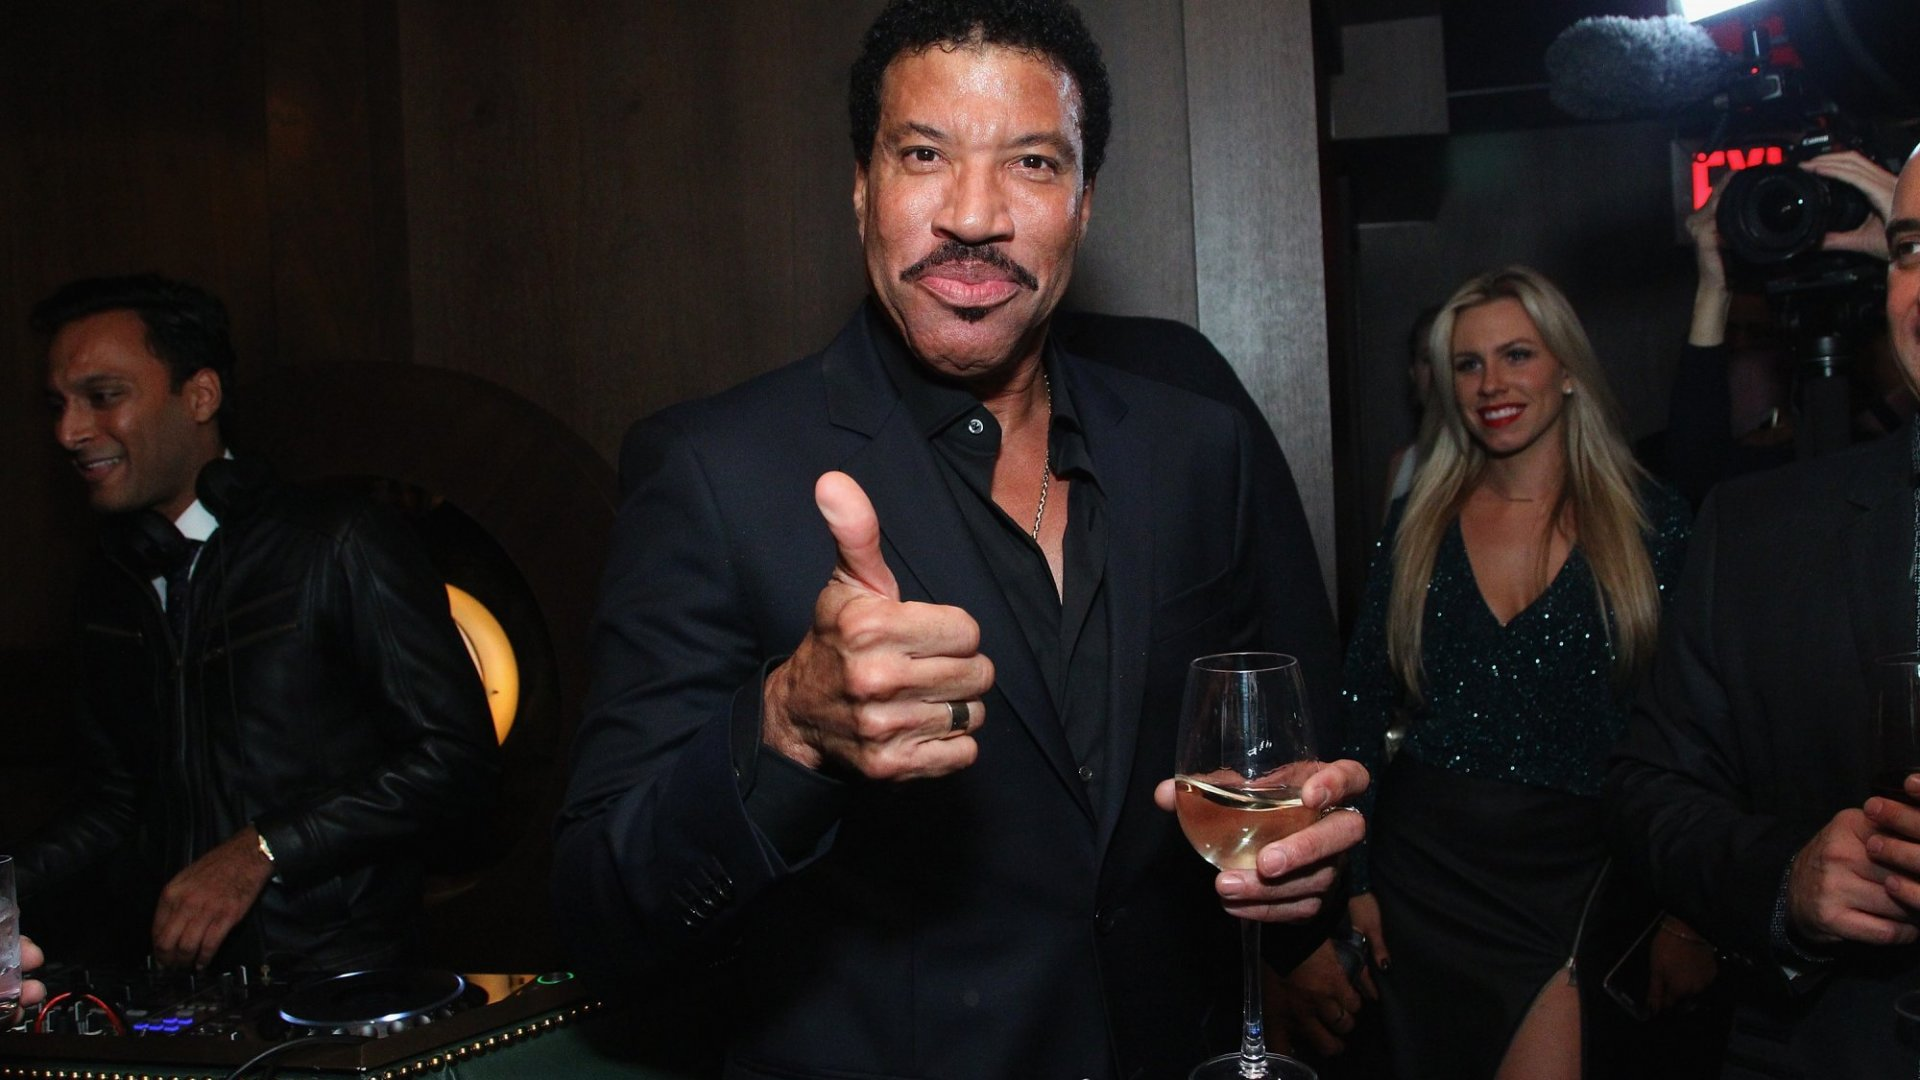 Lionel Richie's TopAdvice On Taking Risks